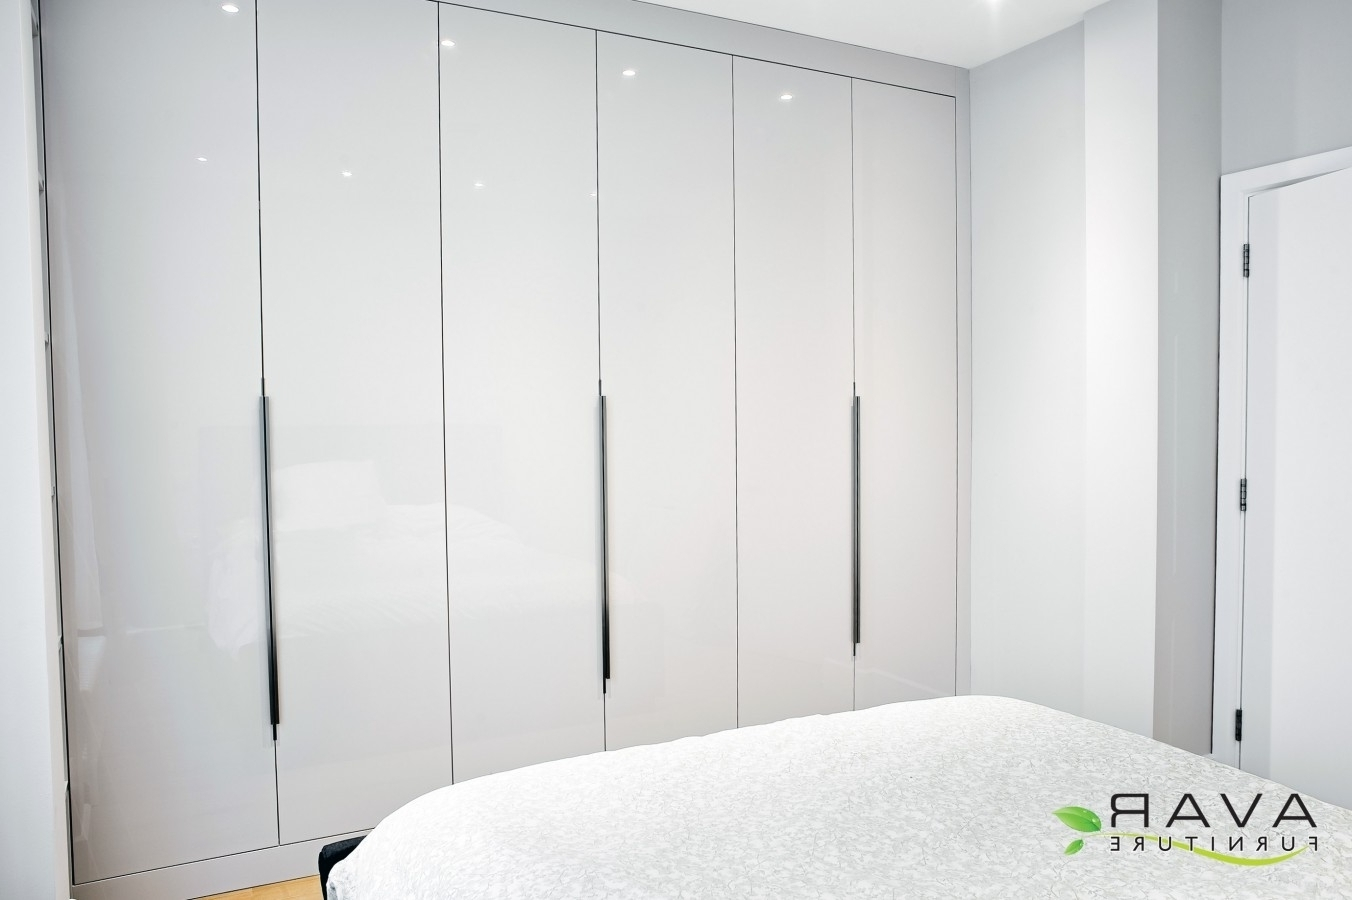 High Gloss White Wardrobes Within Most Current White High Gloss Fitted Bedroom Furniture • White Bedroom Ideas (View 9 of 15)